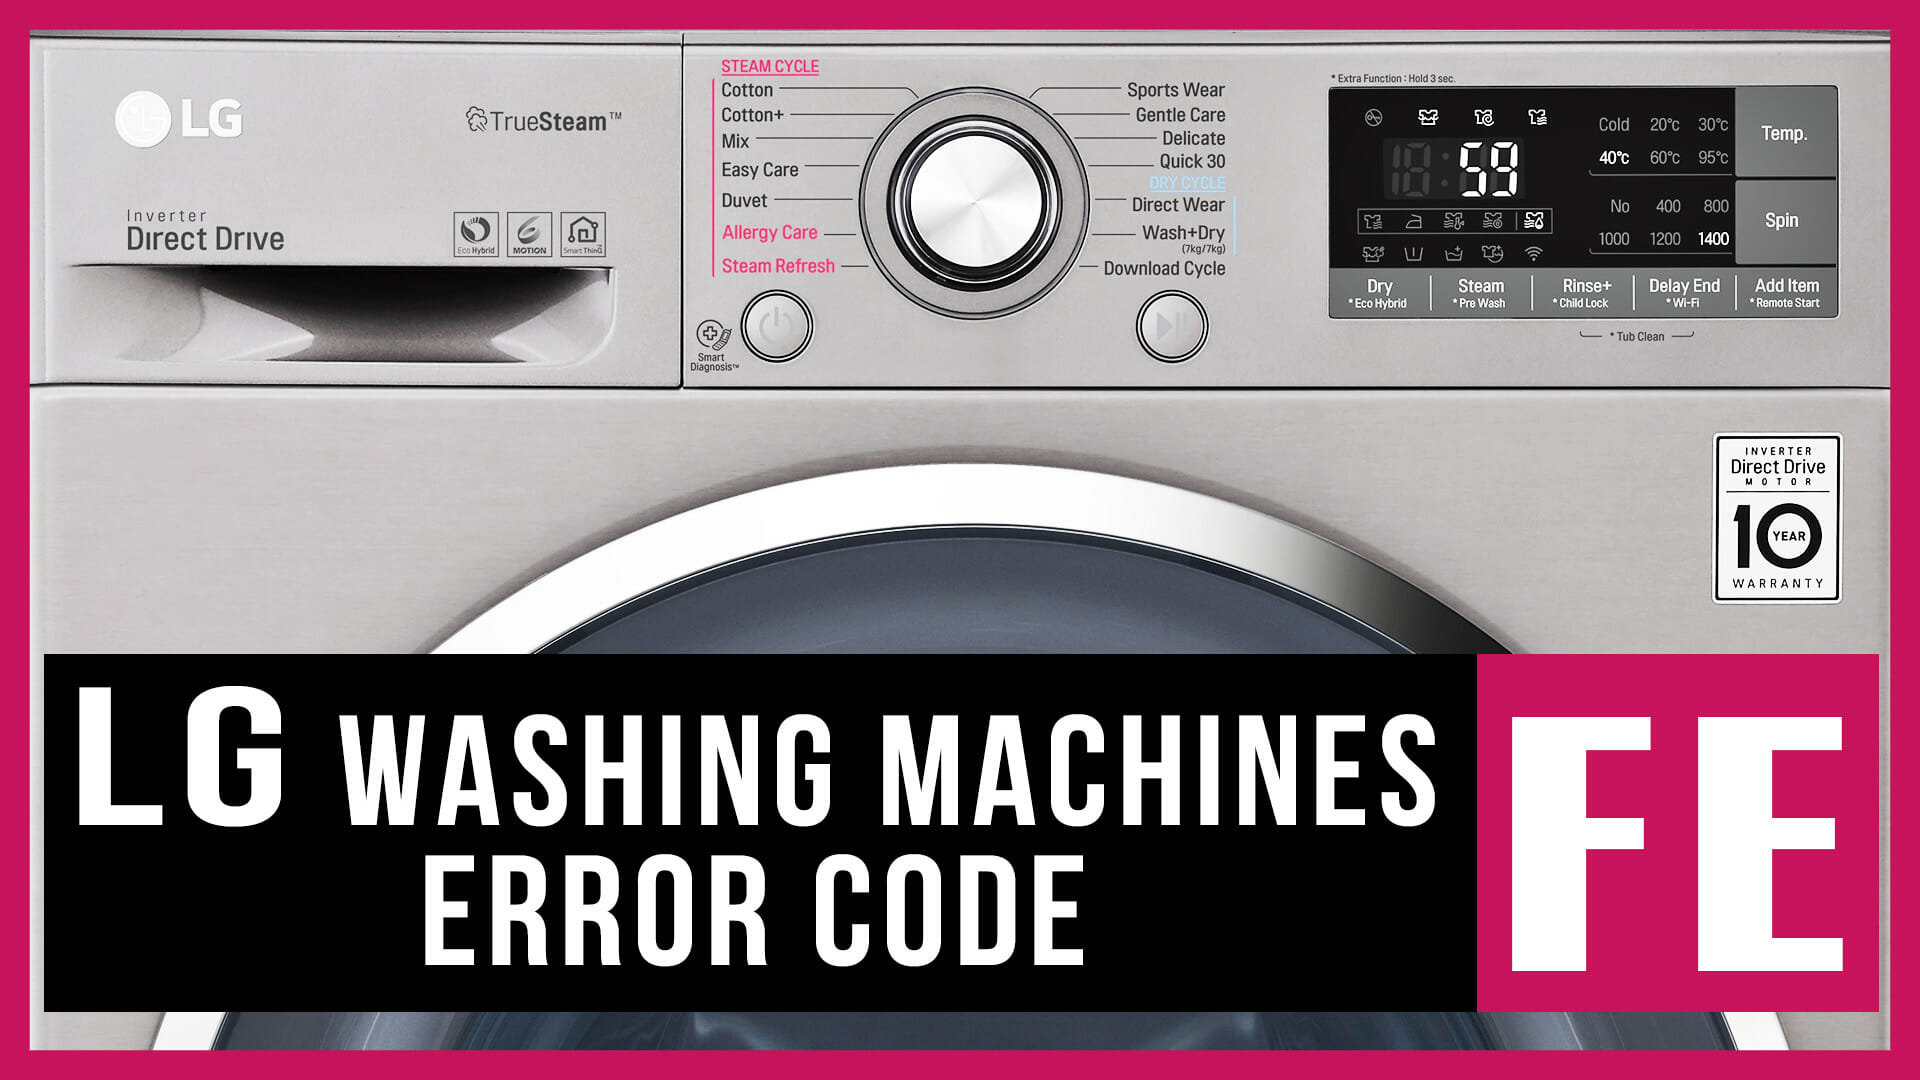 LG washer error code FE | Causes, How FIX Problem